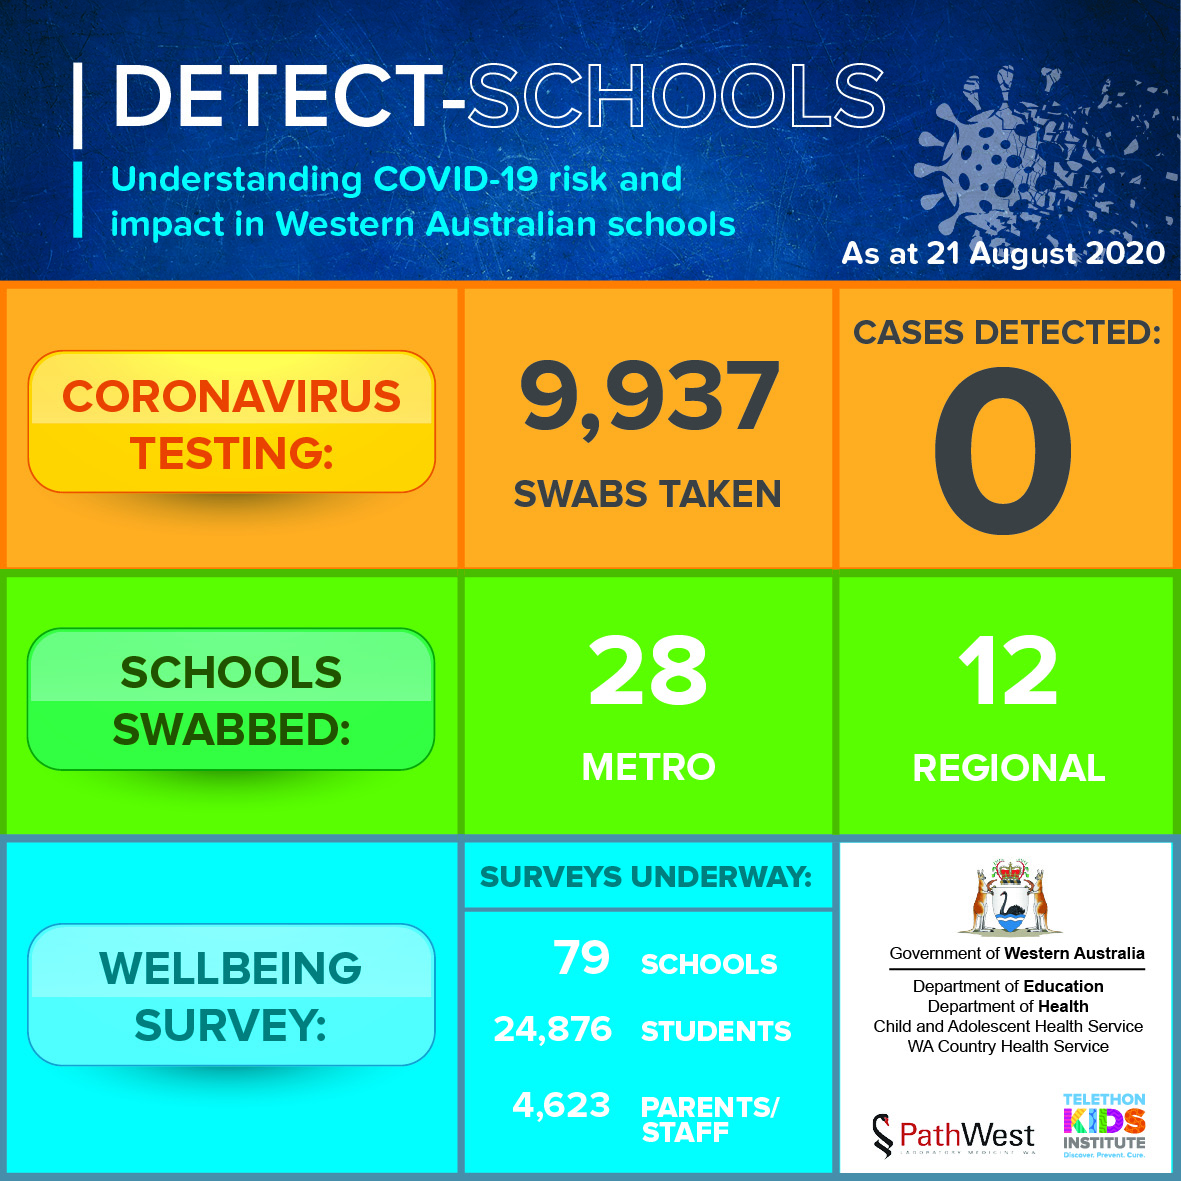 DETECT schools dashboard 21 August 2020